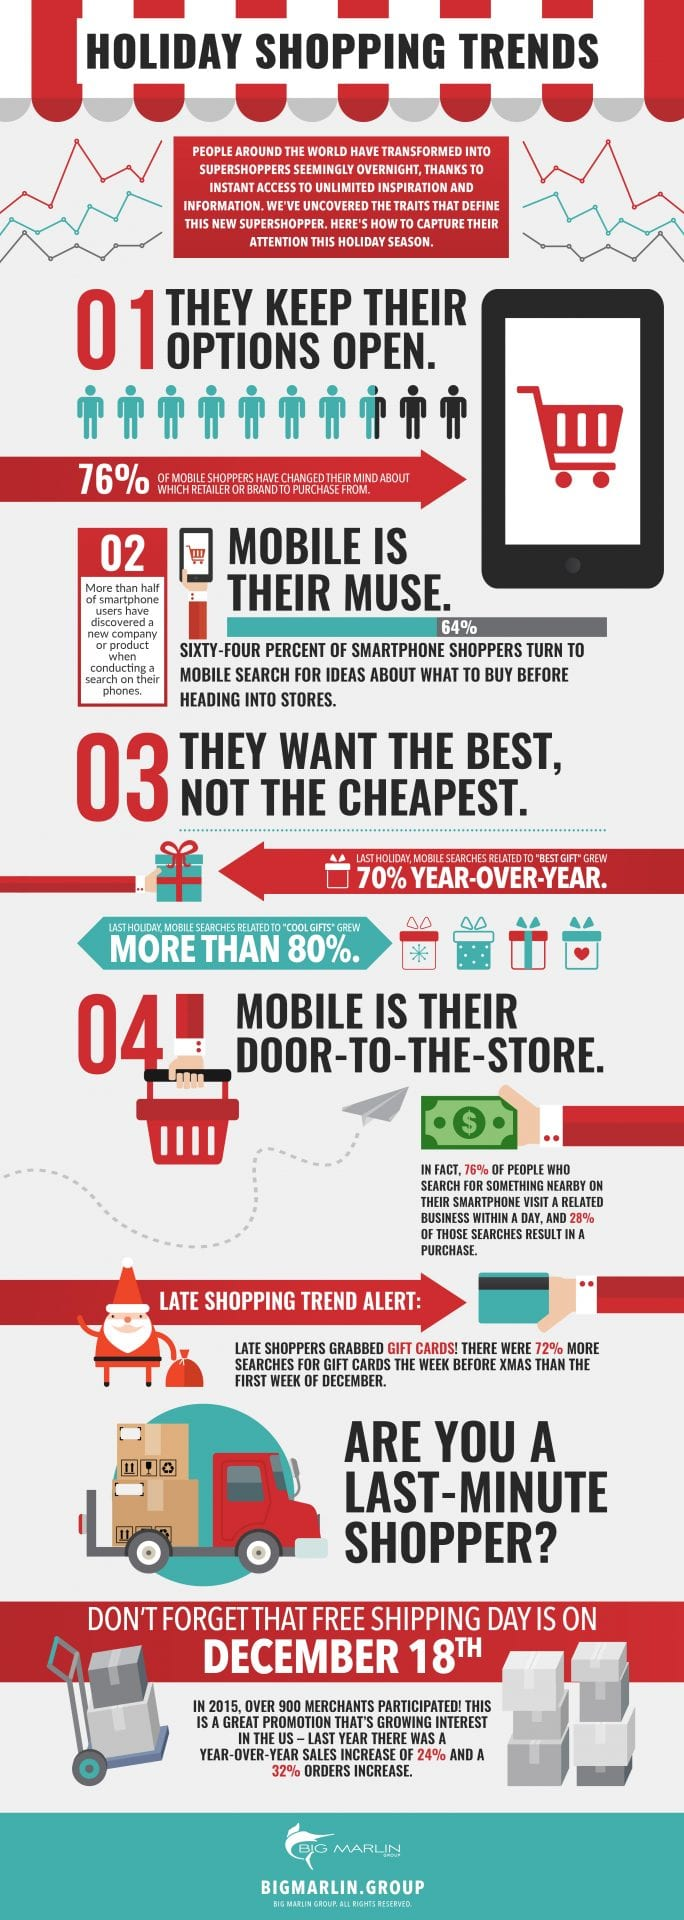 Review: Holiday Shopping Trends Infographic